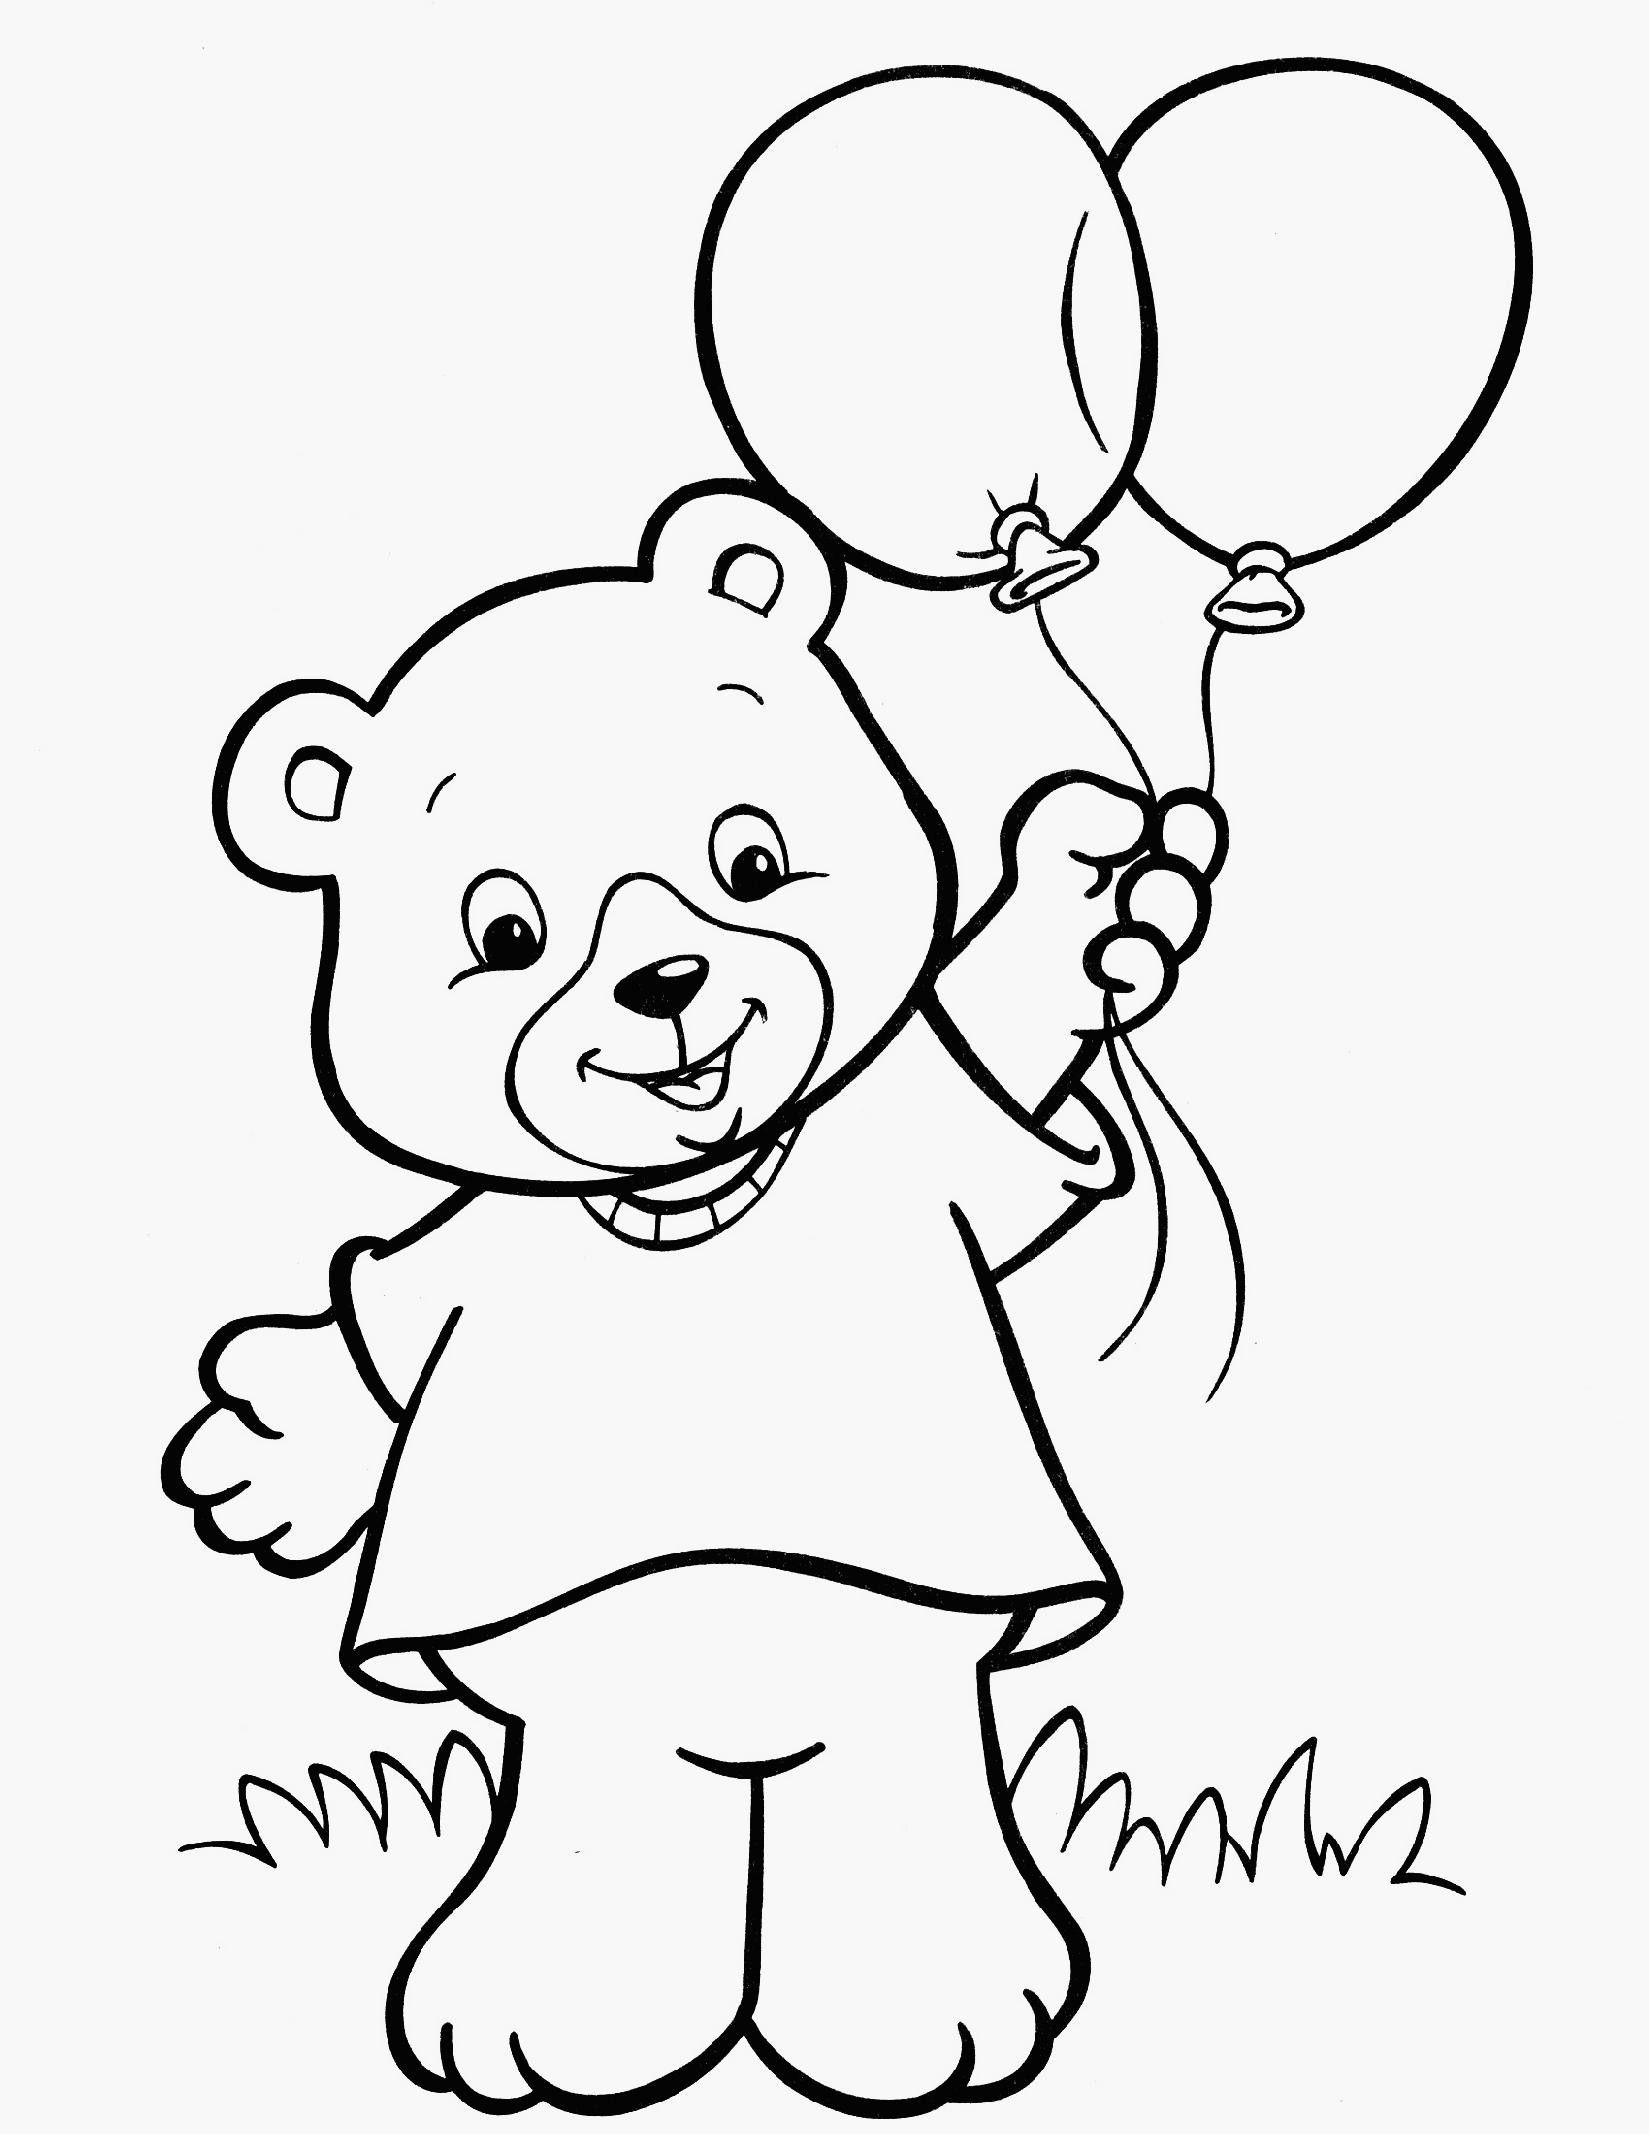 Disney Coloring Pages For 3 Year Olds : Free coloring pages for year olds home